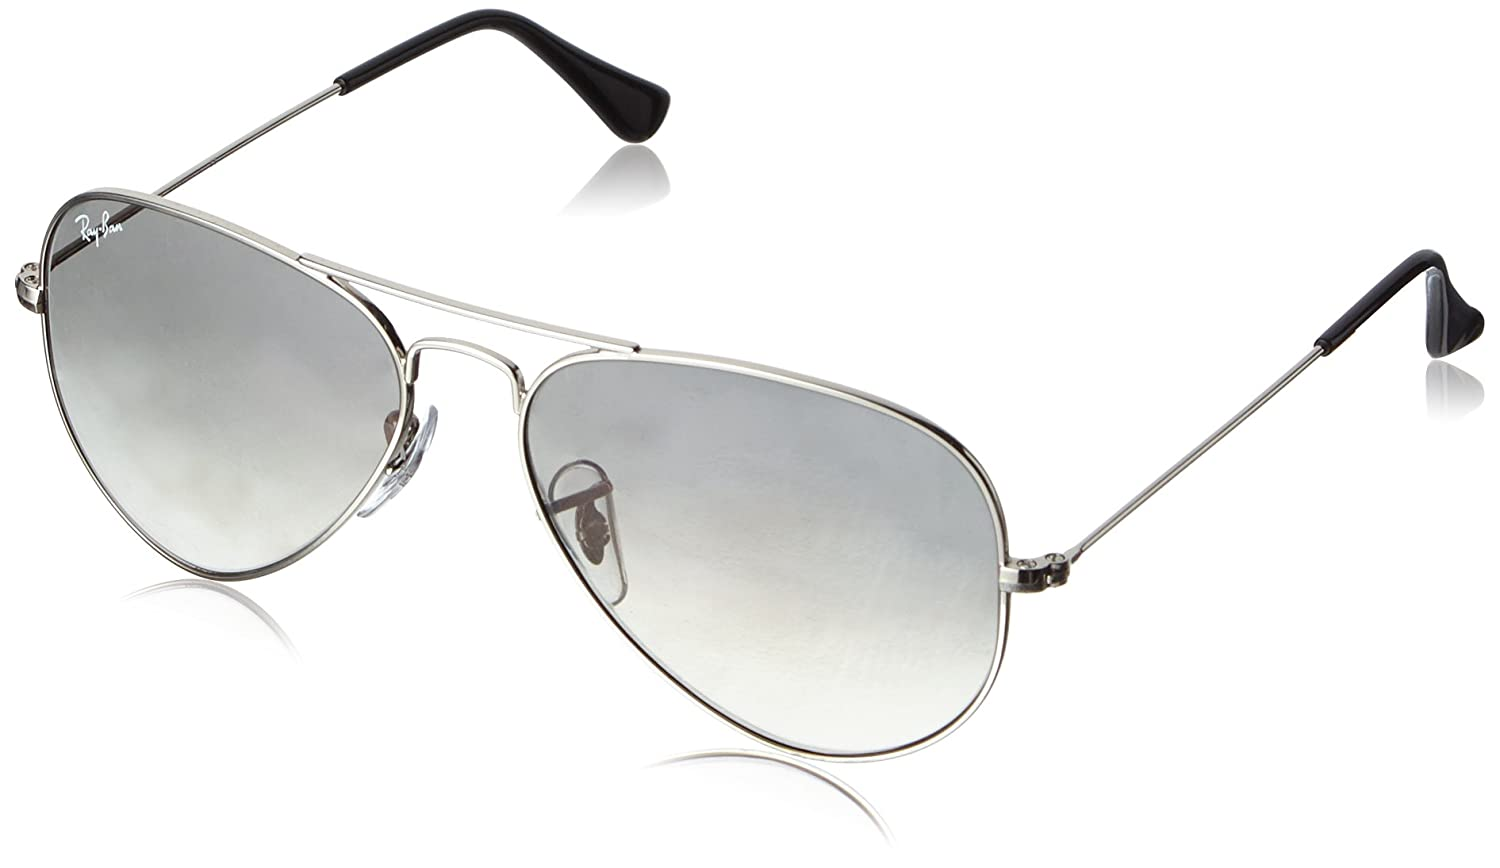 ray ban aviator sunglasses rb3025  amazon: ray ban 0rb3025 aviator metal non polarized sunglasses, silver/ crystal grey gradient, 55mm: ray ban: clothing